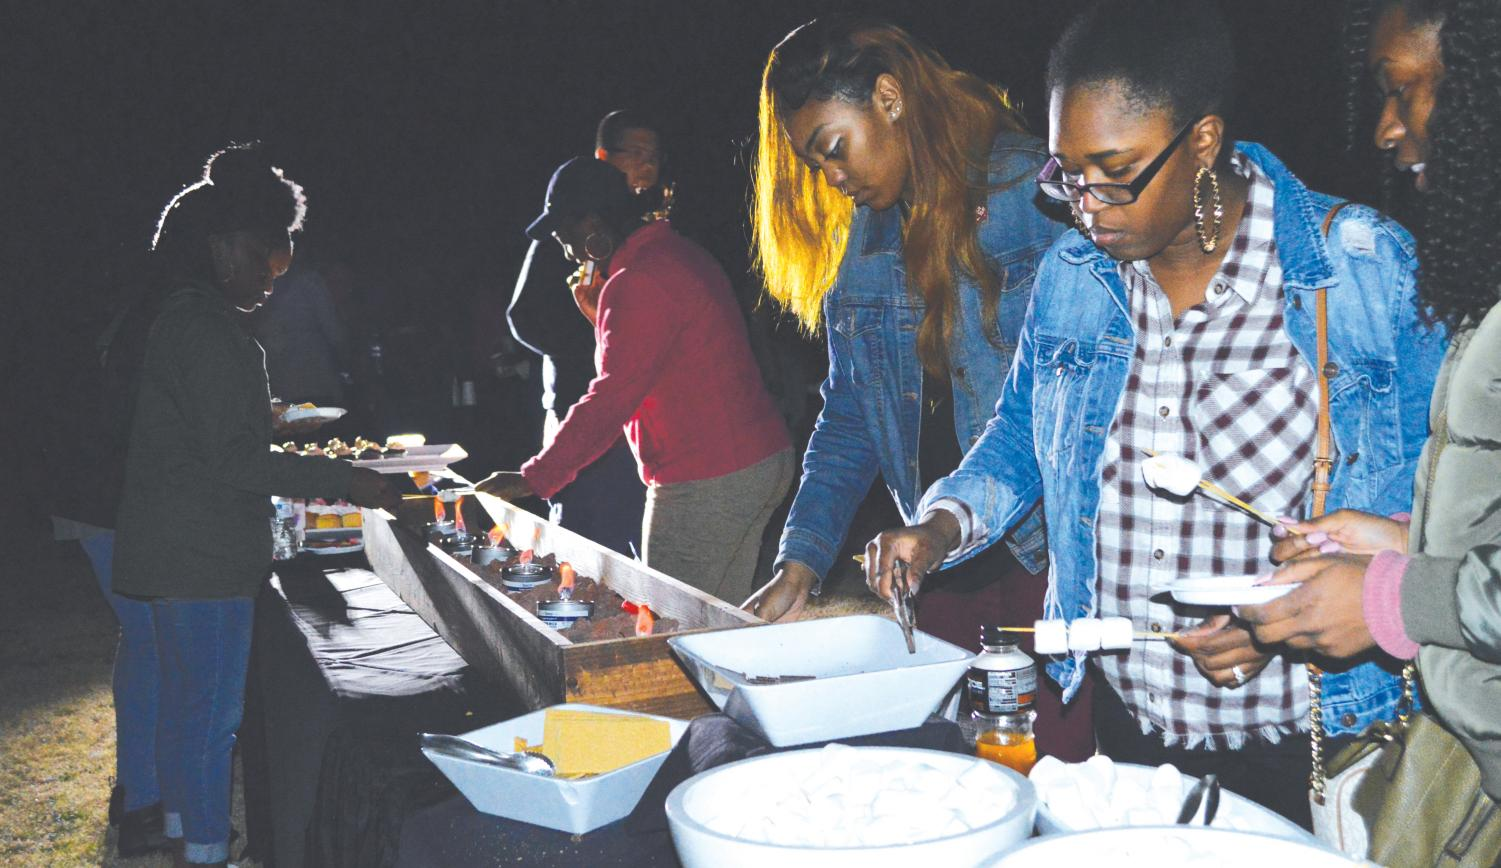 Students gather around the dessert bar to build their s'mores and eat sweet treats while waiting for the bonfire to be lit.